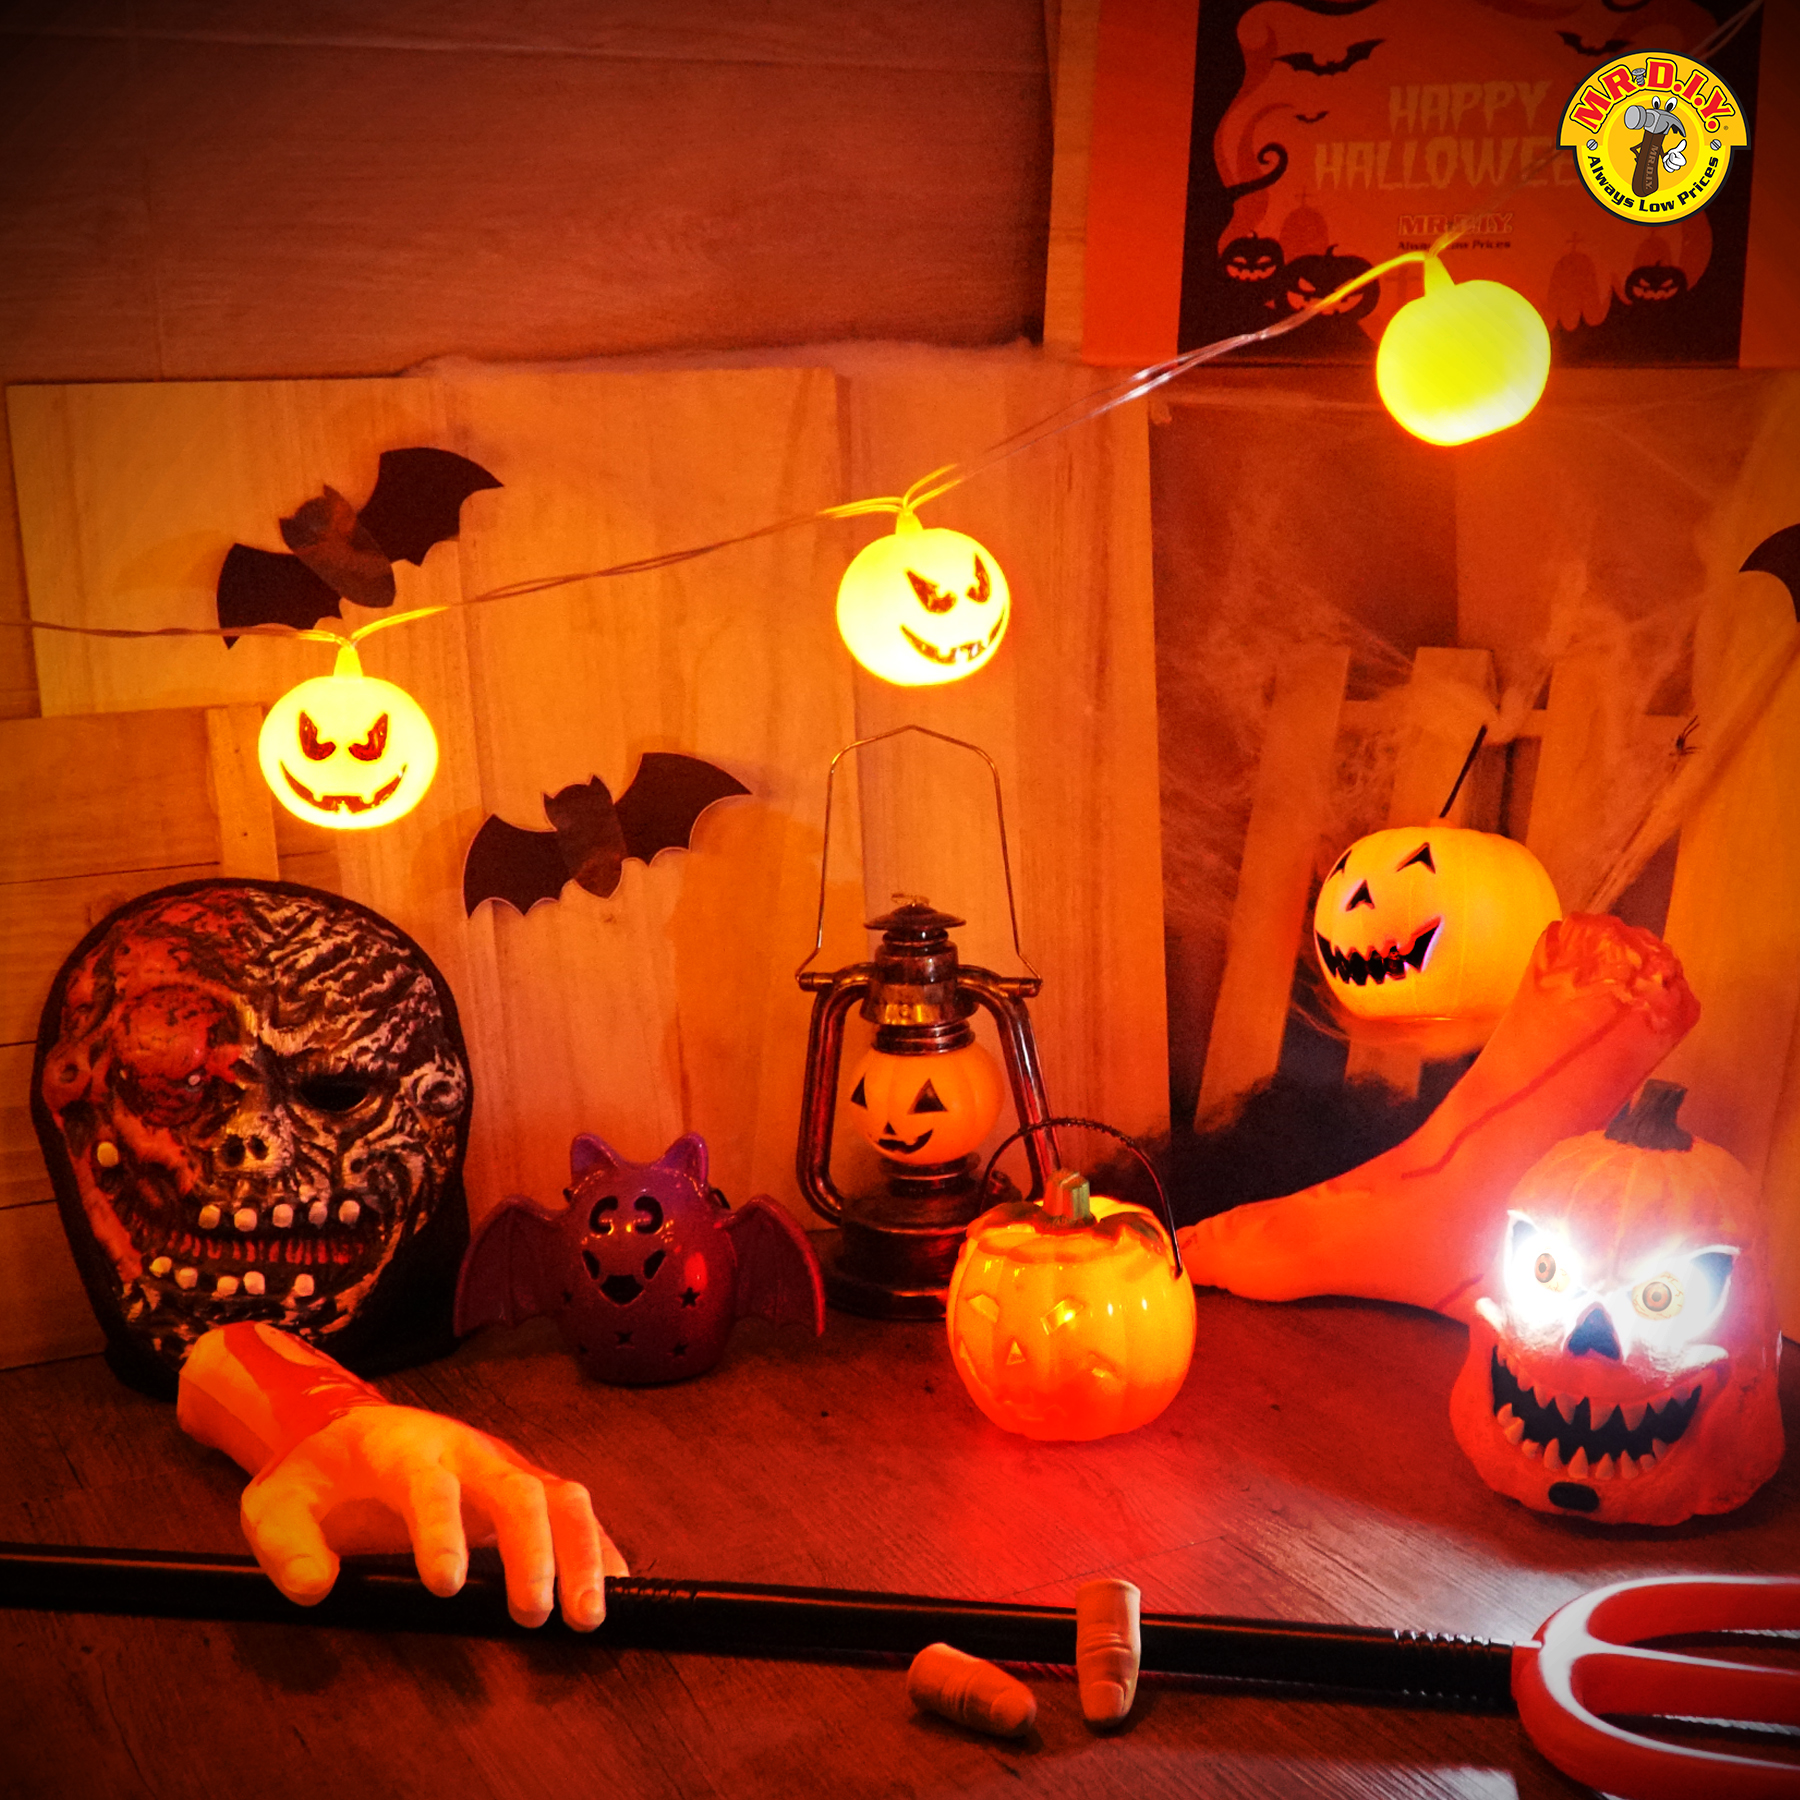 Yang Kay Baca Tcash Vaganza 35 Dialogue Alat Bantu Berjalan Bayi Owl Series Spice Up Your Halloween Decoration With Mrdiy Is A Spooktacular Time Of The Year Where Everyone Gets Excited To Dress In Their Best Scary And